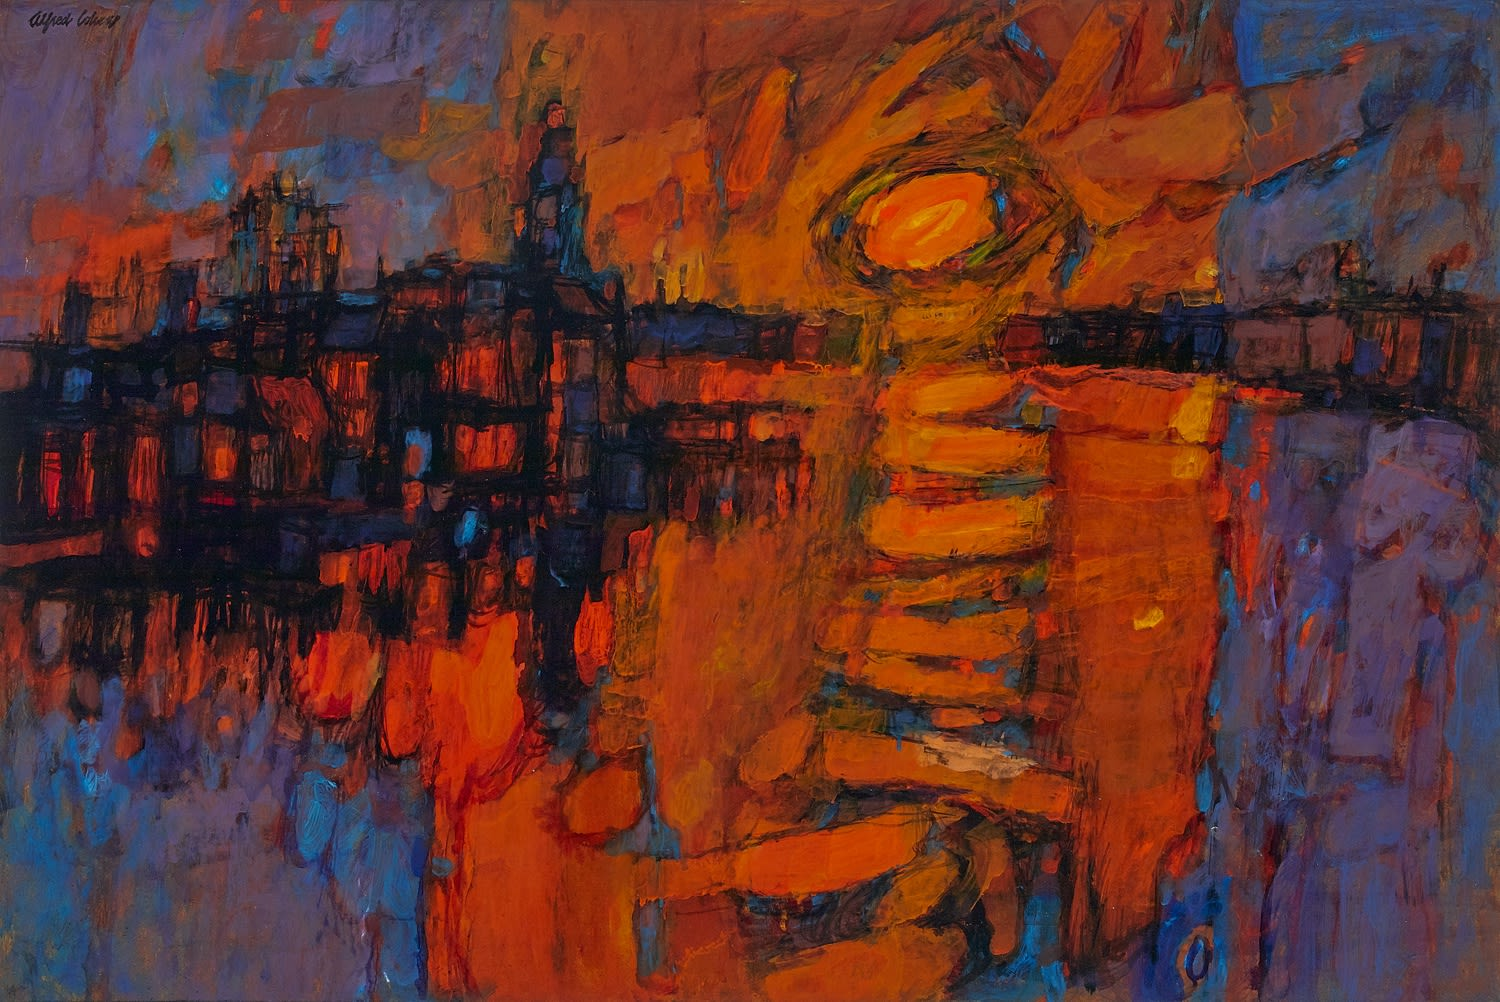 Alfred Cohen (1920-2001) Sunset from Blackfriars Bridge 1960 Oil on board 61 x 91.4 cm Private Collection © Estate of Alfred Cohen 2020